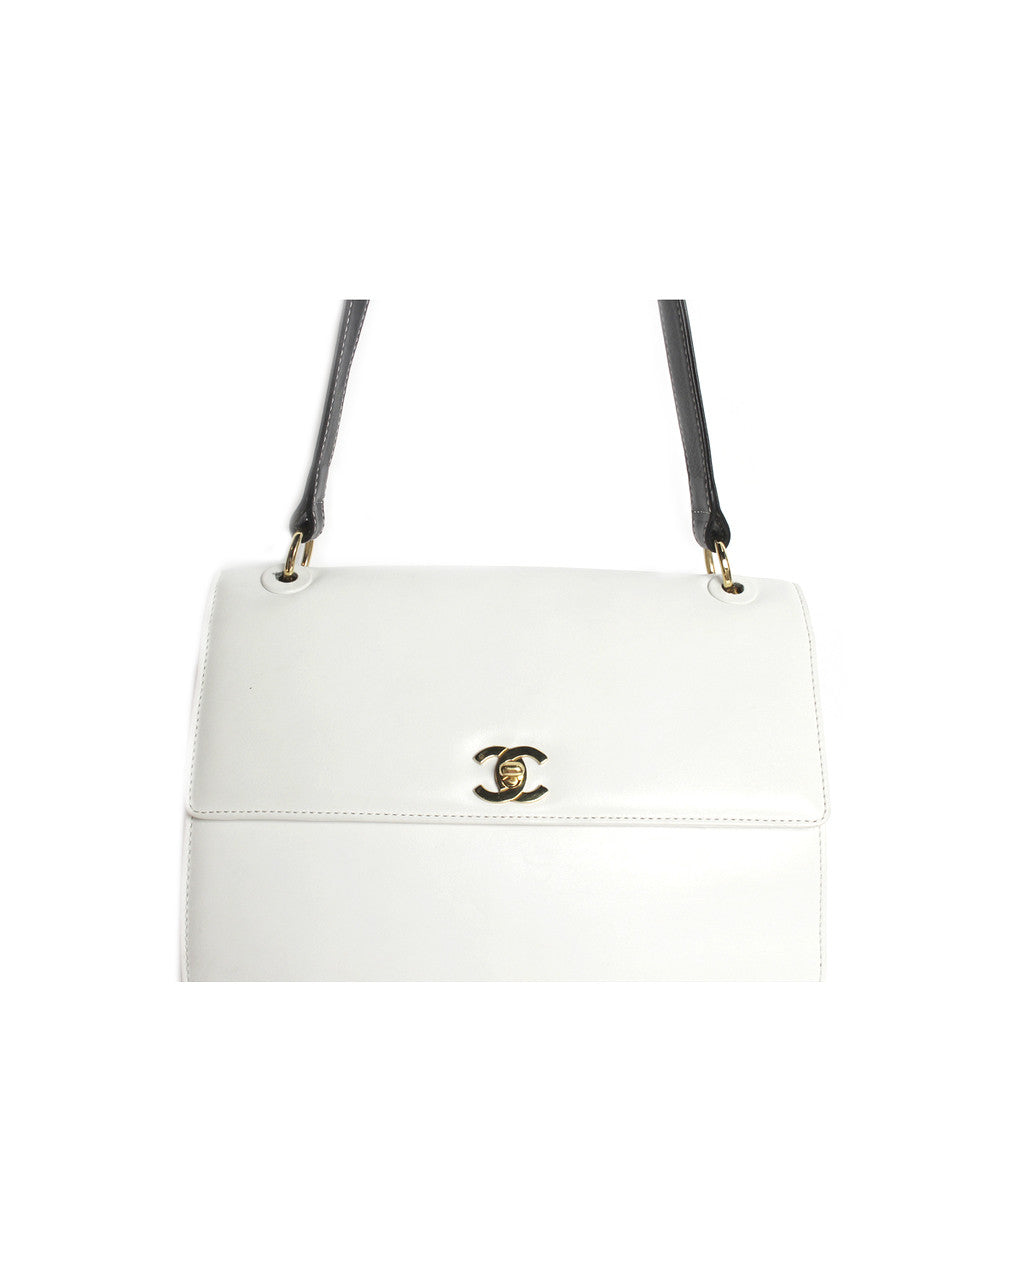 Chanel White U0026 Black Leather Shoulder Purse